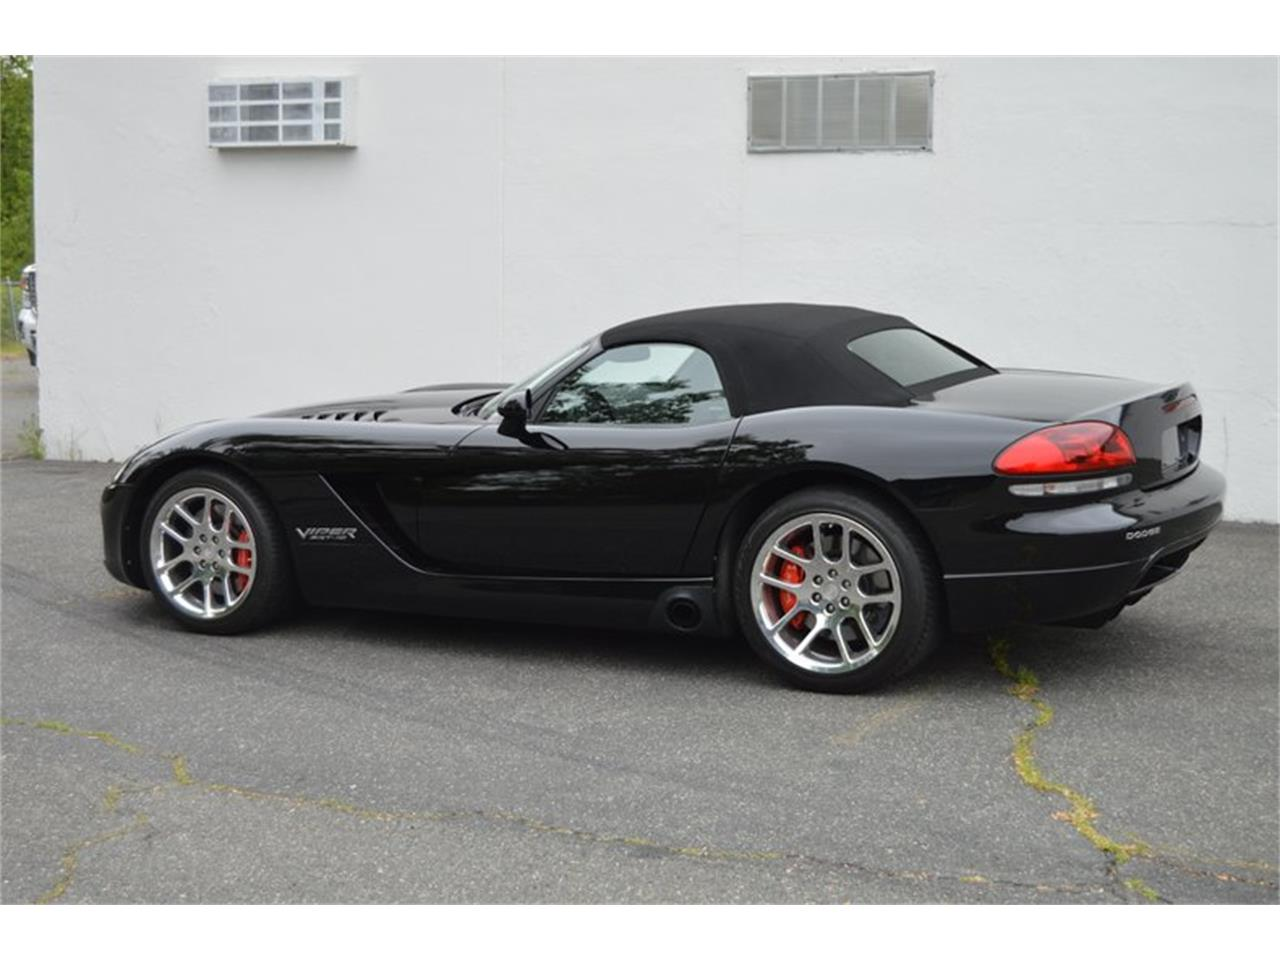 Large Picture of '04 Dodge Viper located in Massachusetts Offered by Mutual Enterprises Inc. - Q8EU